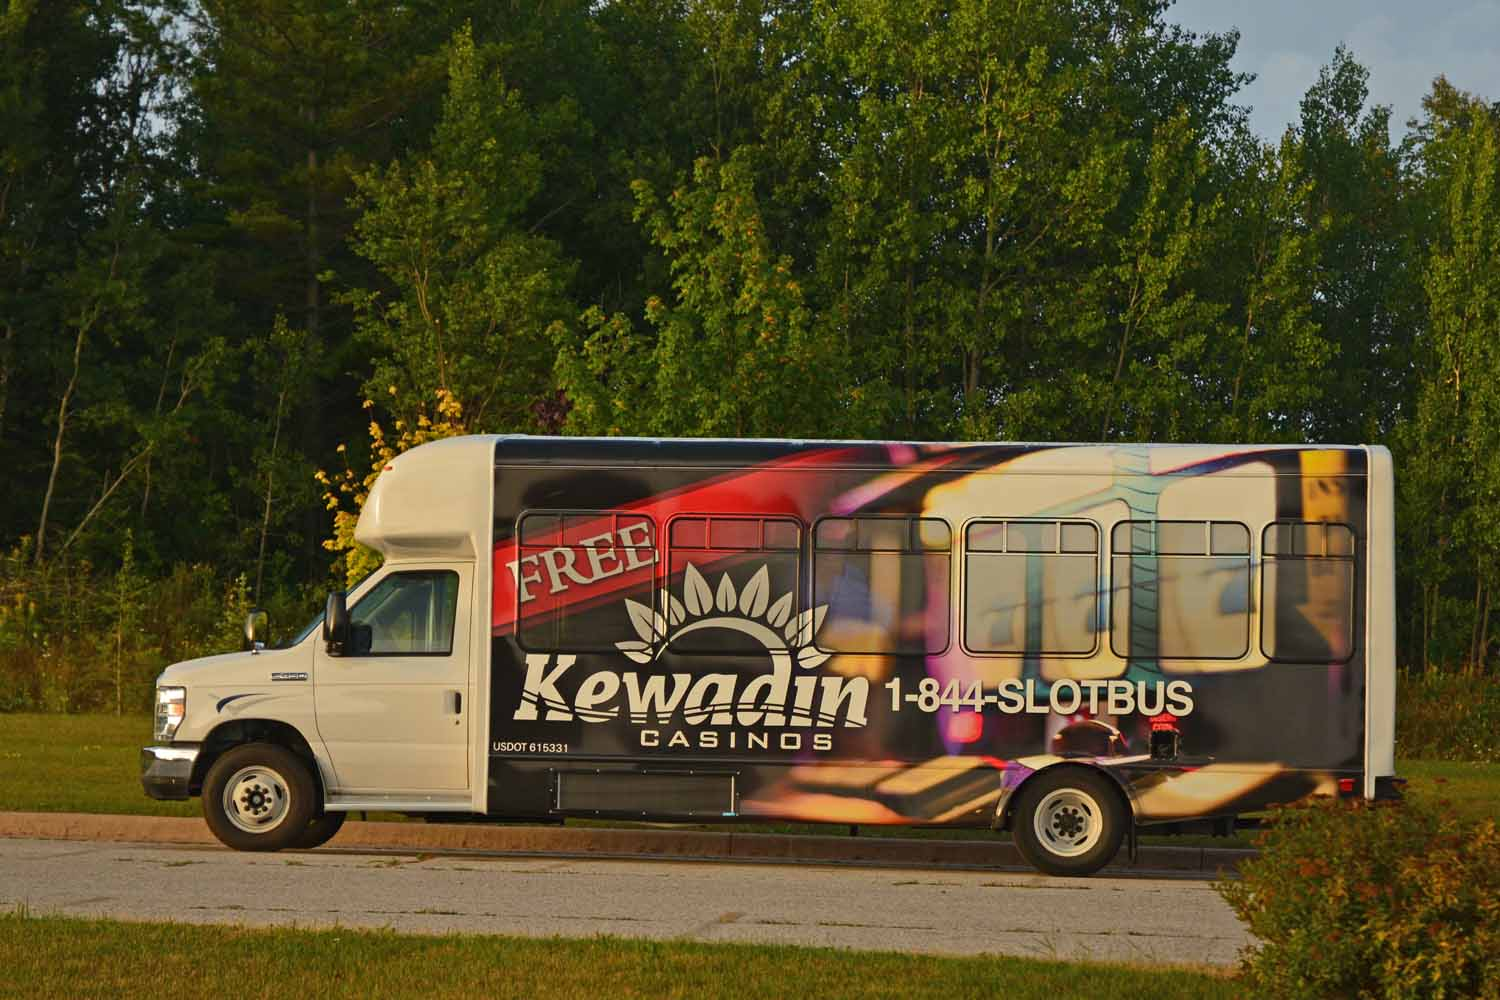 Kewadin Casino is a good first night out stay.  It gets us on the road and is only a two hour drive from Traverse City.  It is nice to be on the road with the planning and packing behind us.